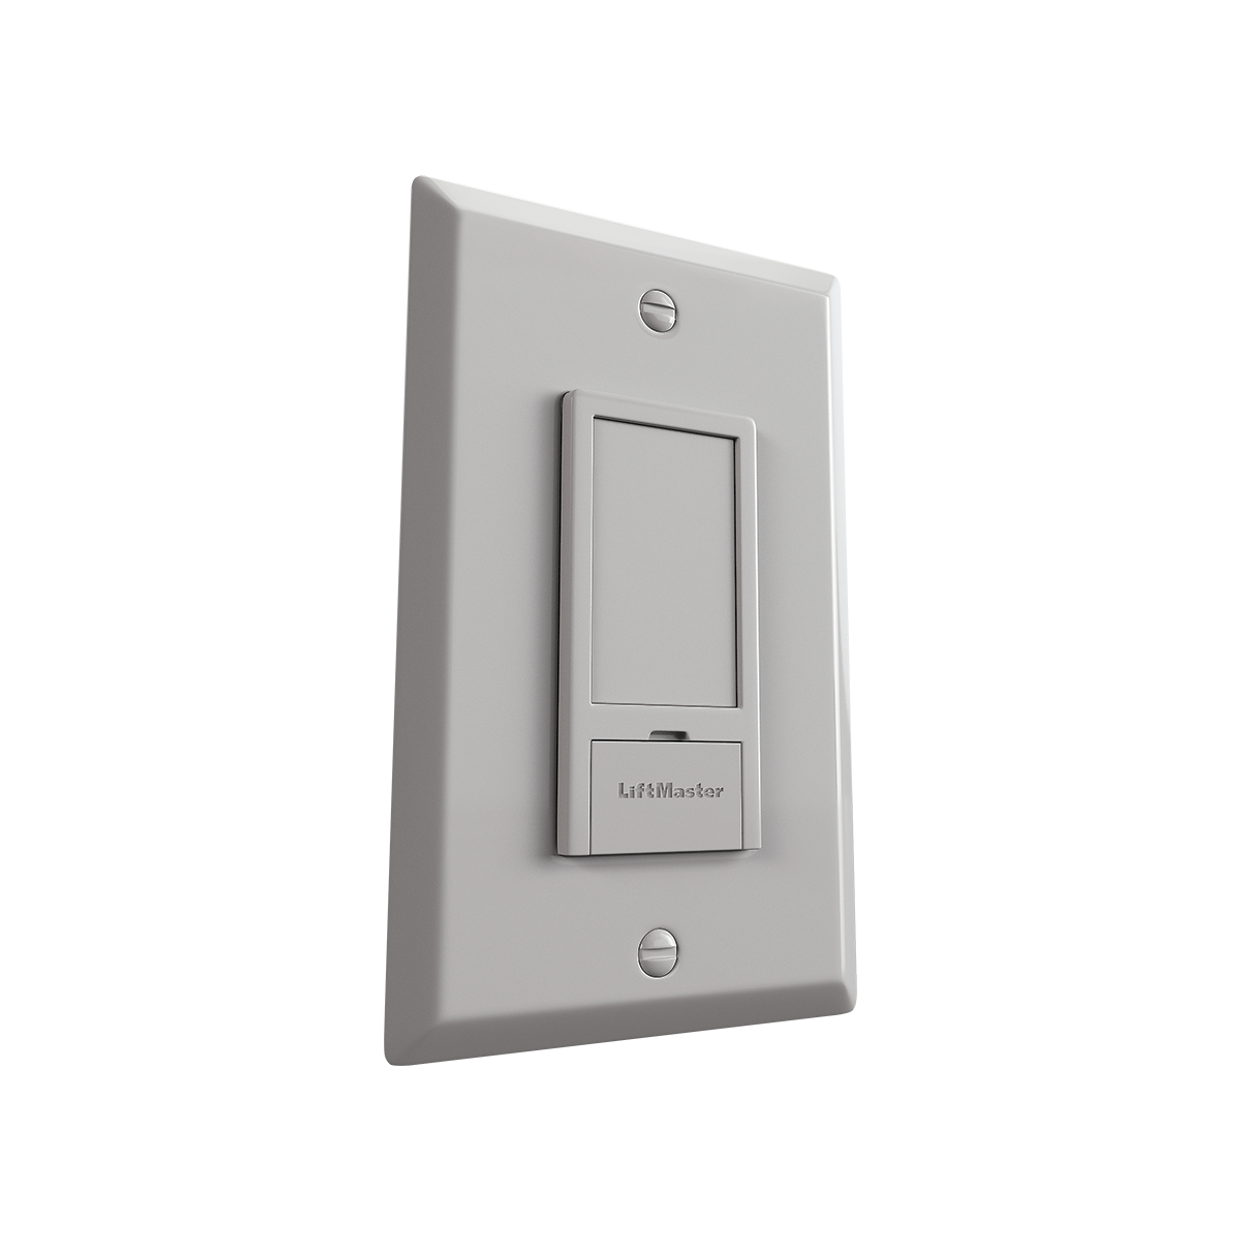 823LM - Remote Light Switch